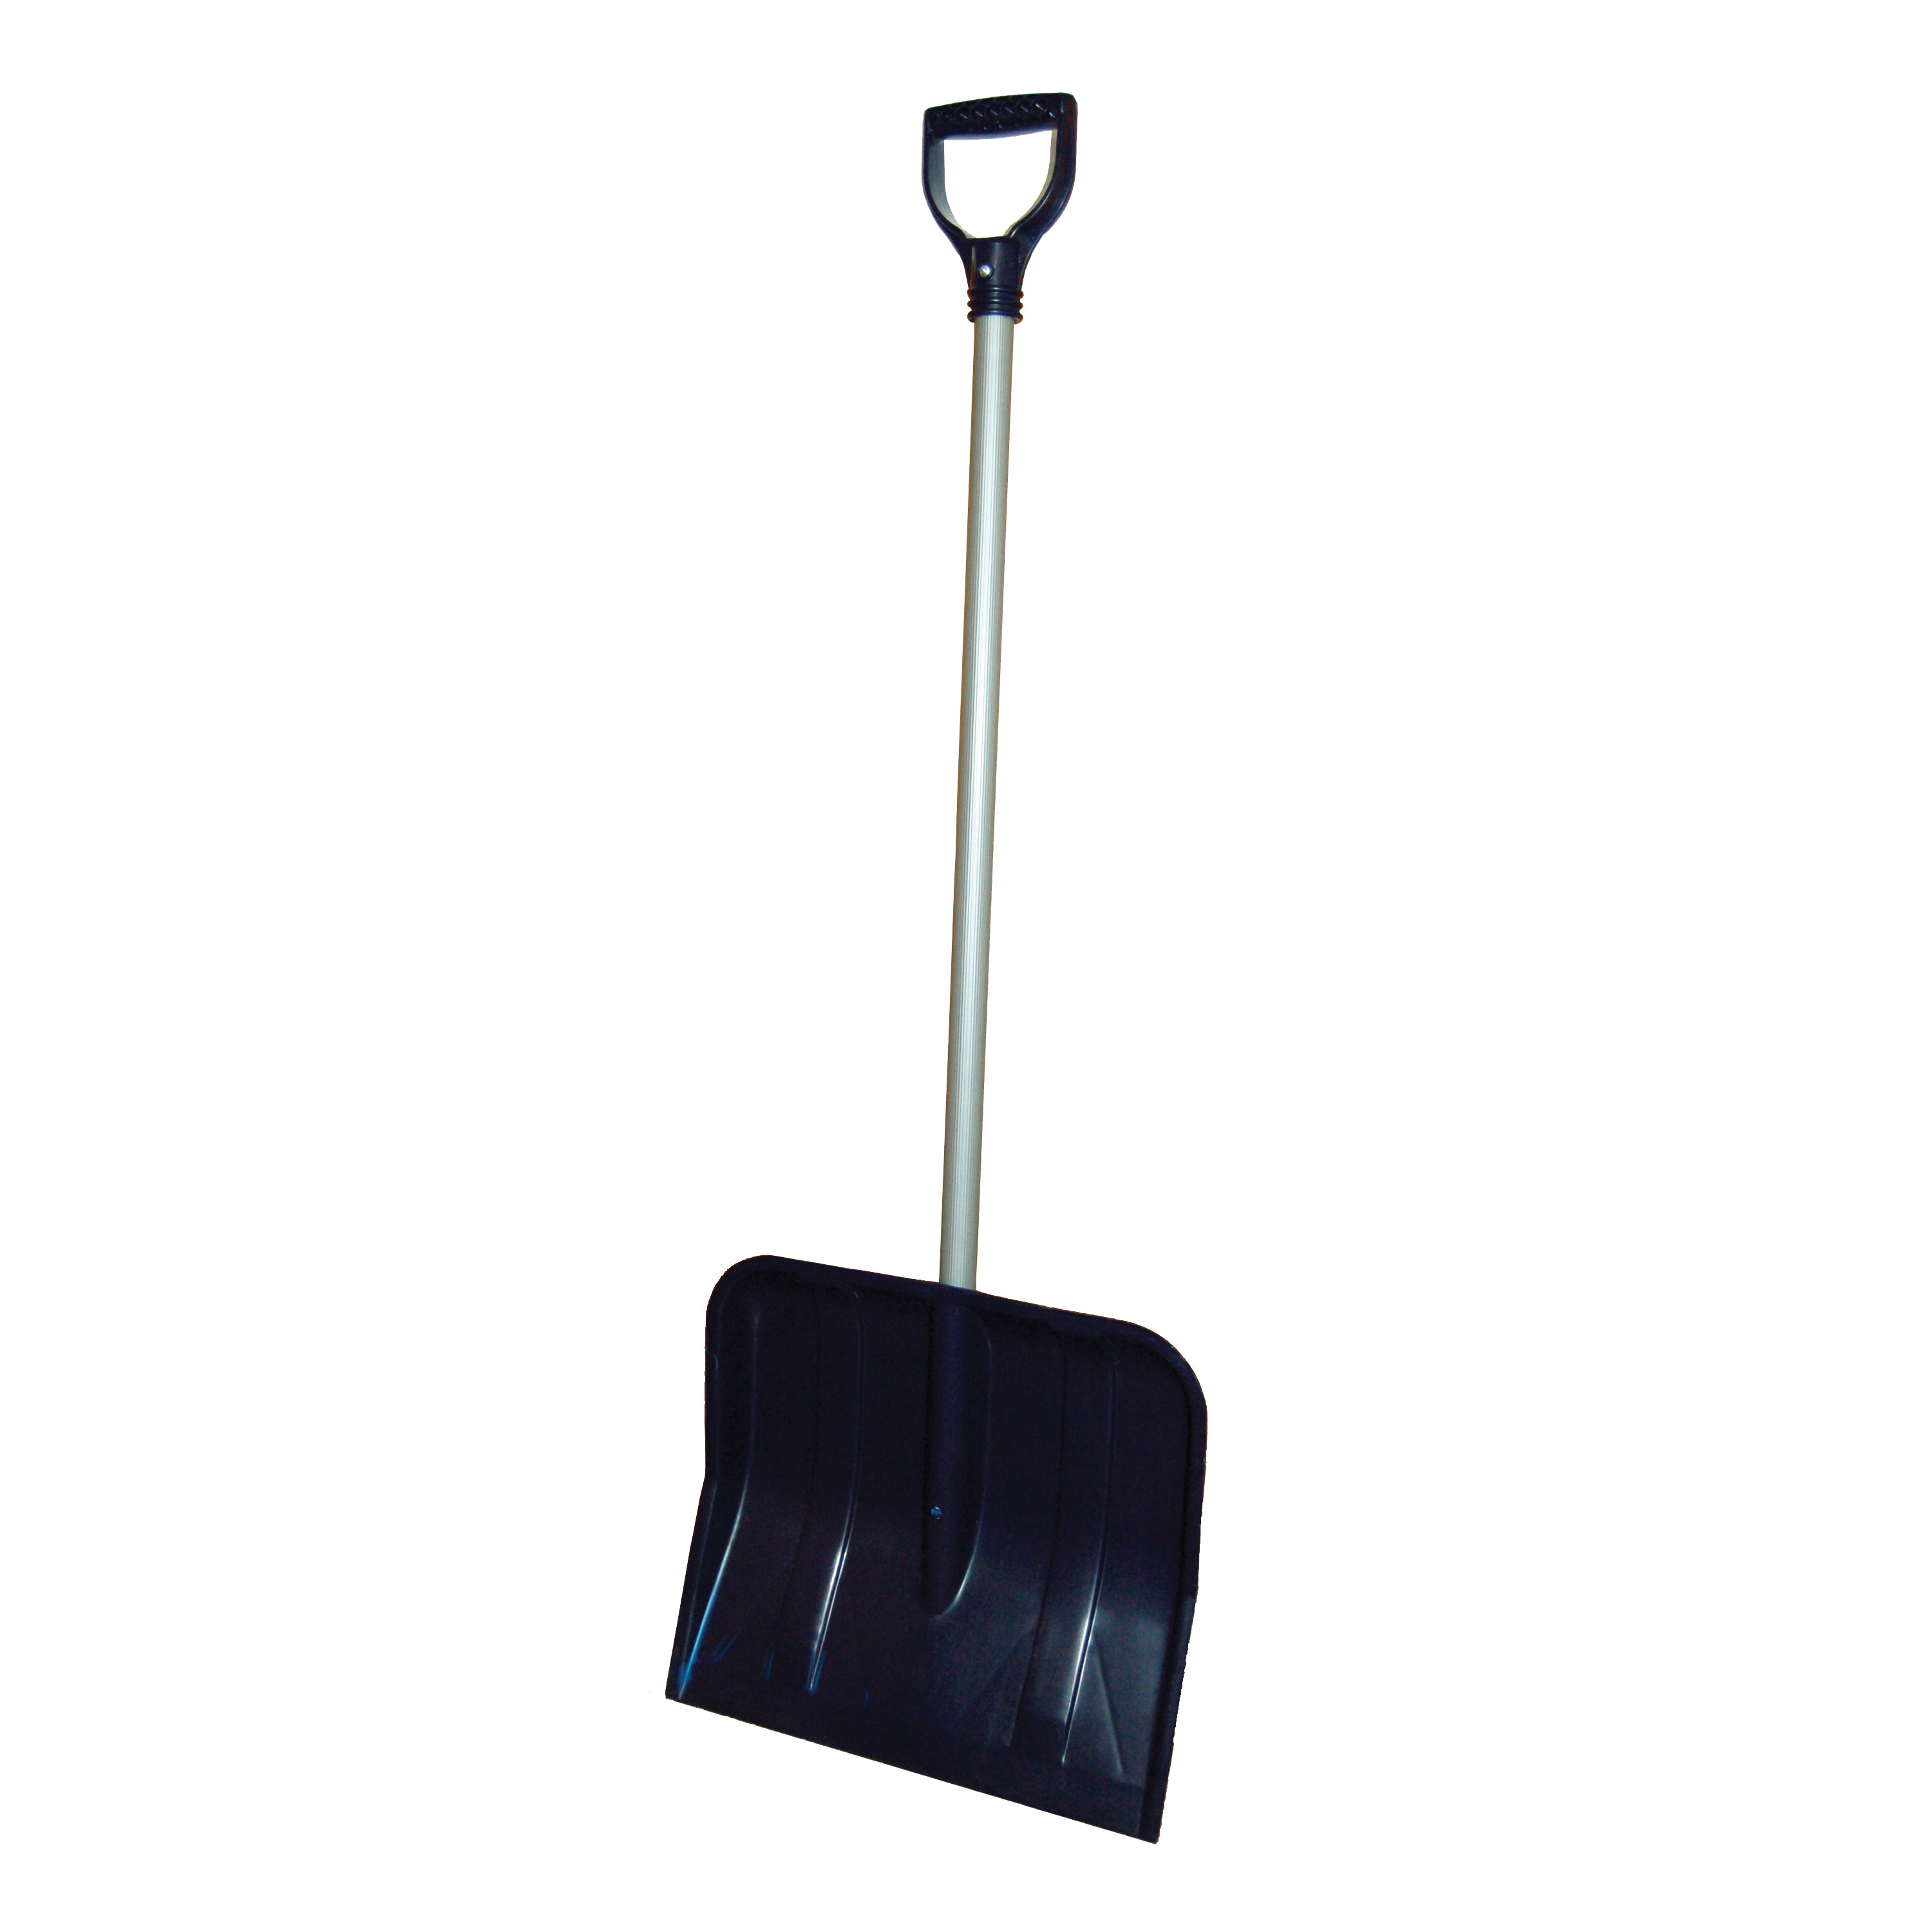 Picture of RUGG 27P-BG Snow Shovel, 18 in W Blade, Standard Blade, Polyethylene Blade, Steel Handle, Navy